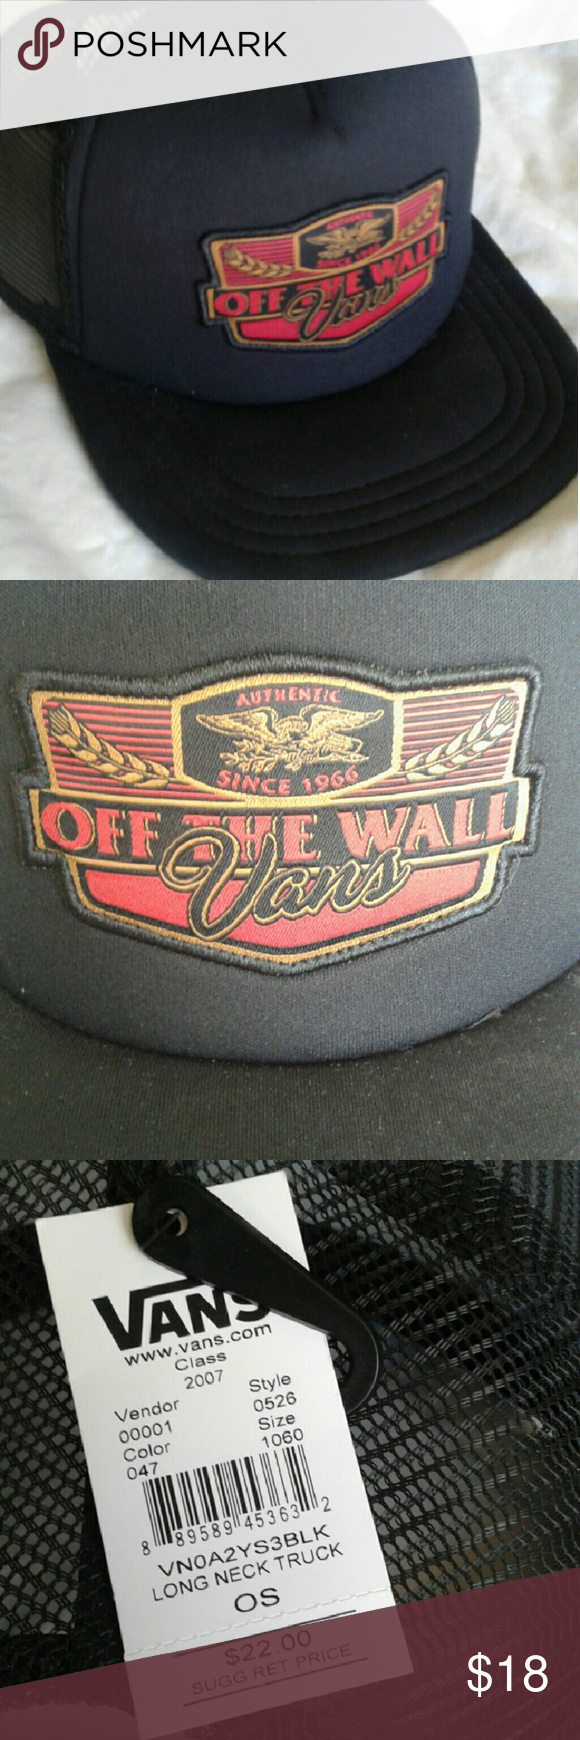 NWT Vans snap back hat Very cool, brand new hat from Vans! All black snap back hat is adjustable and features a patch that looks like a popular beer logo. Vans Accessories Hats